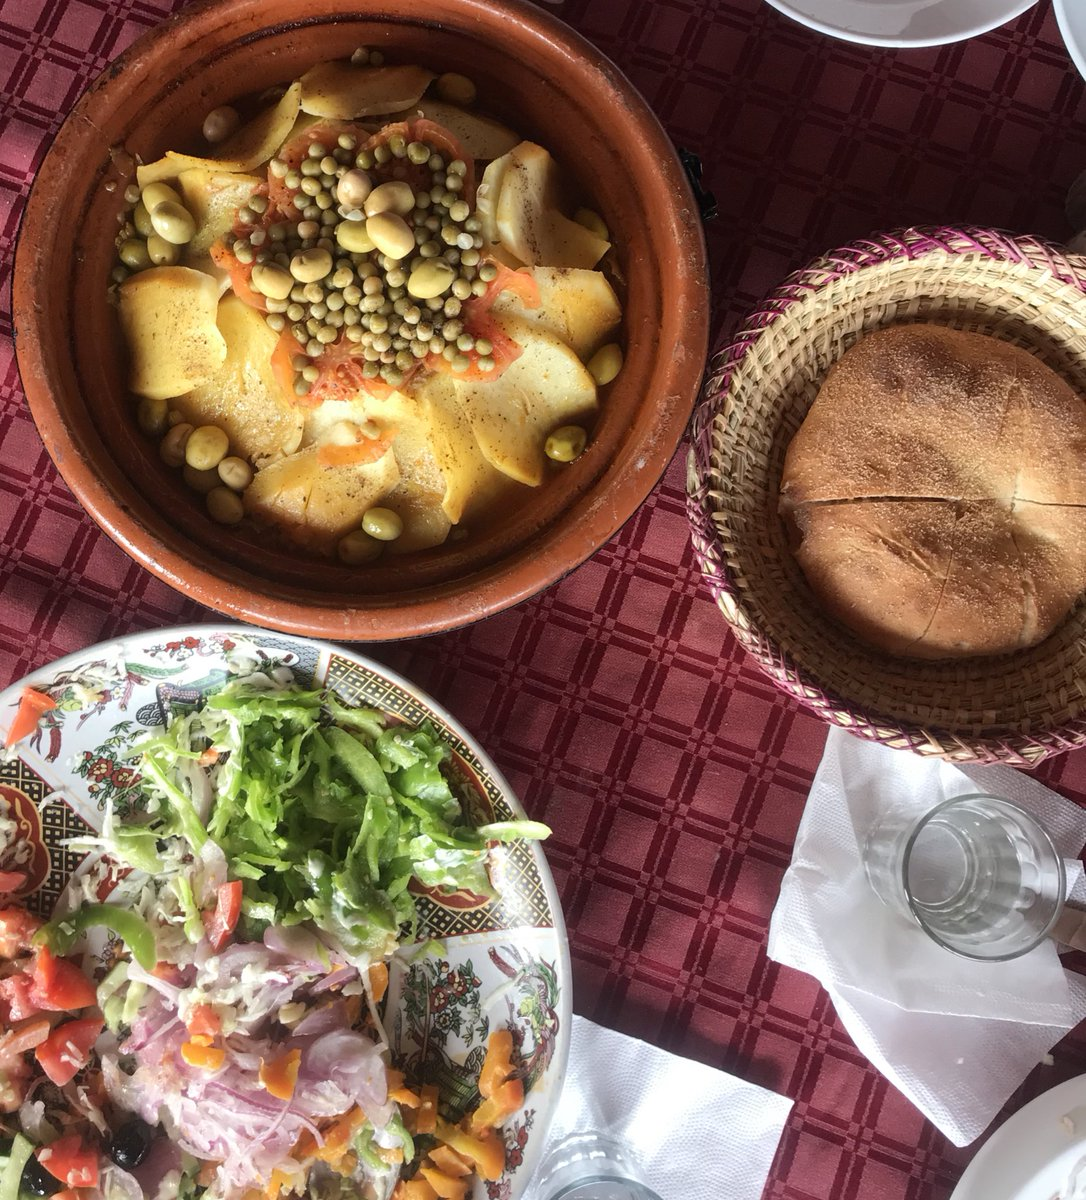 Endless Tagine #Foodie https://t.co/pnLb89Yys1